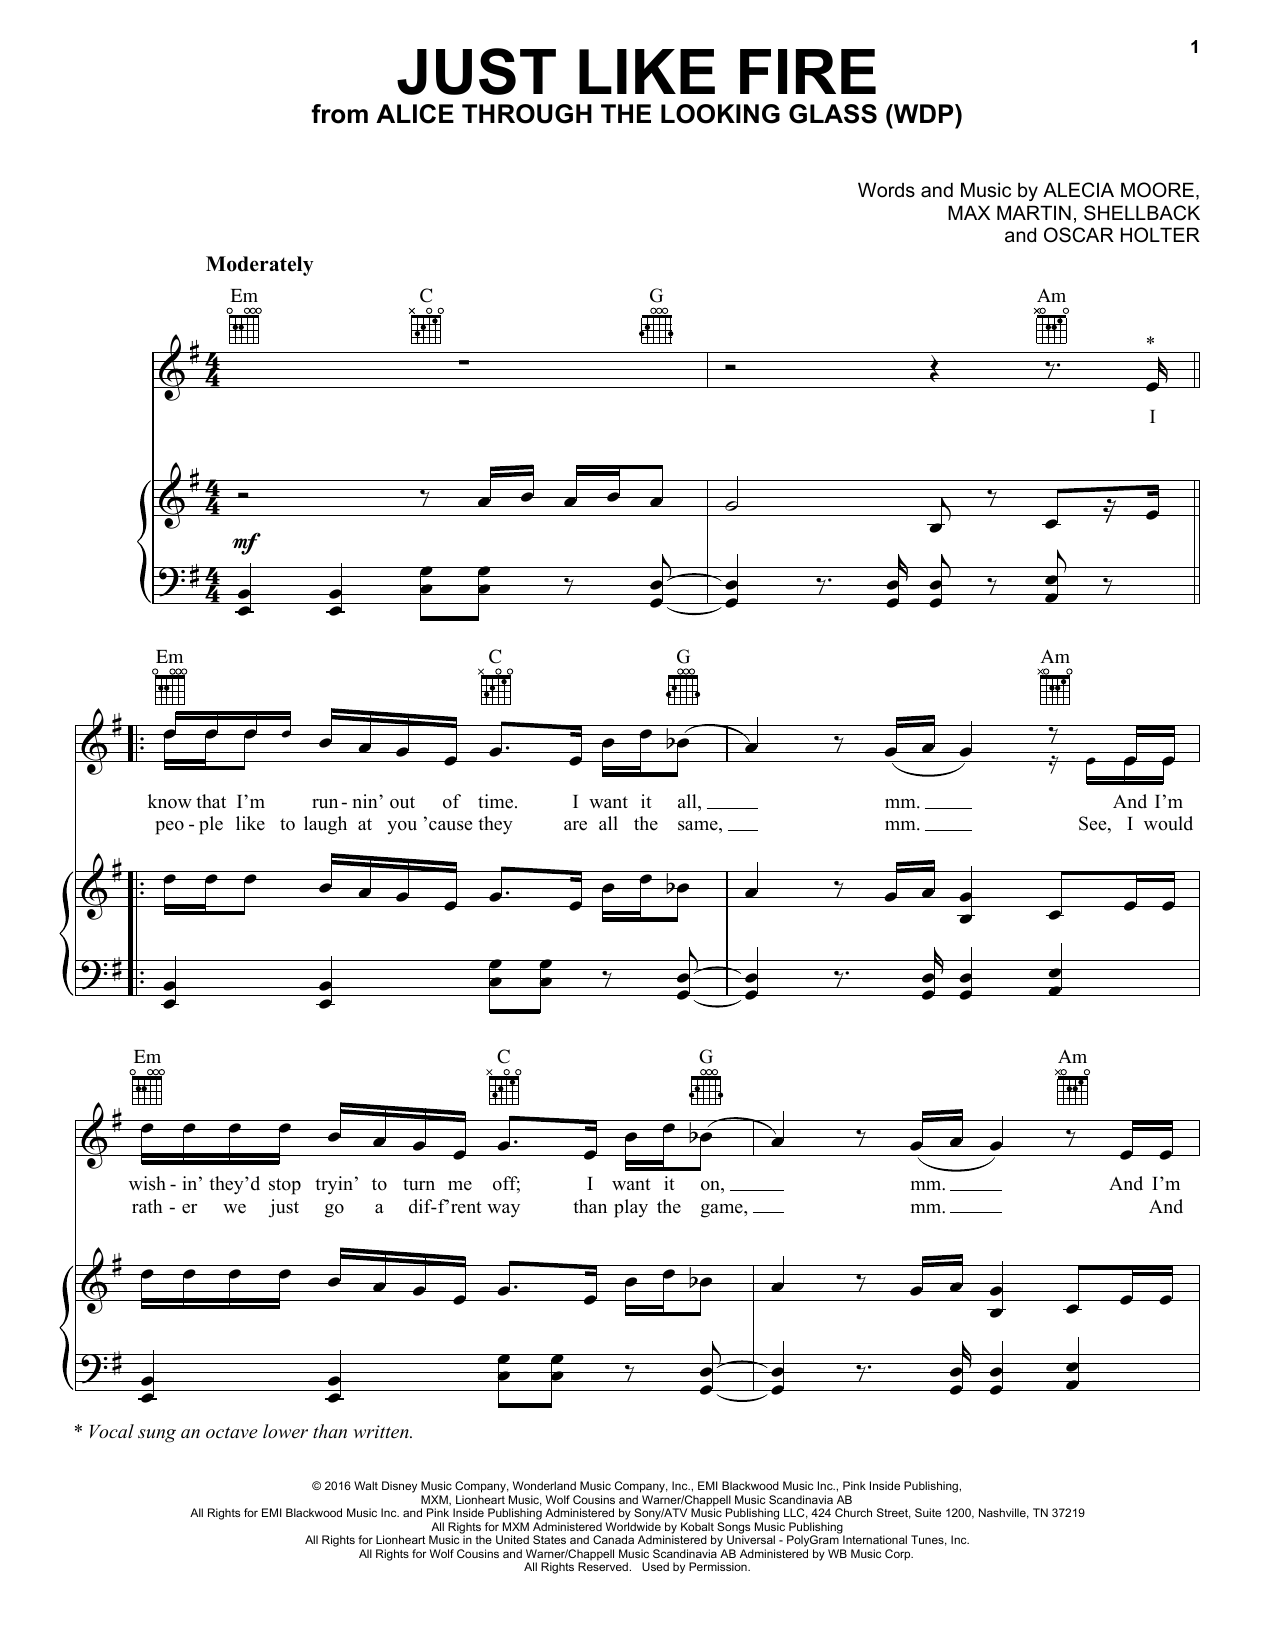 Pink Just Like Fire sheet music notes and chords. Download Printable PDF.